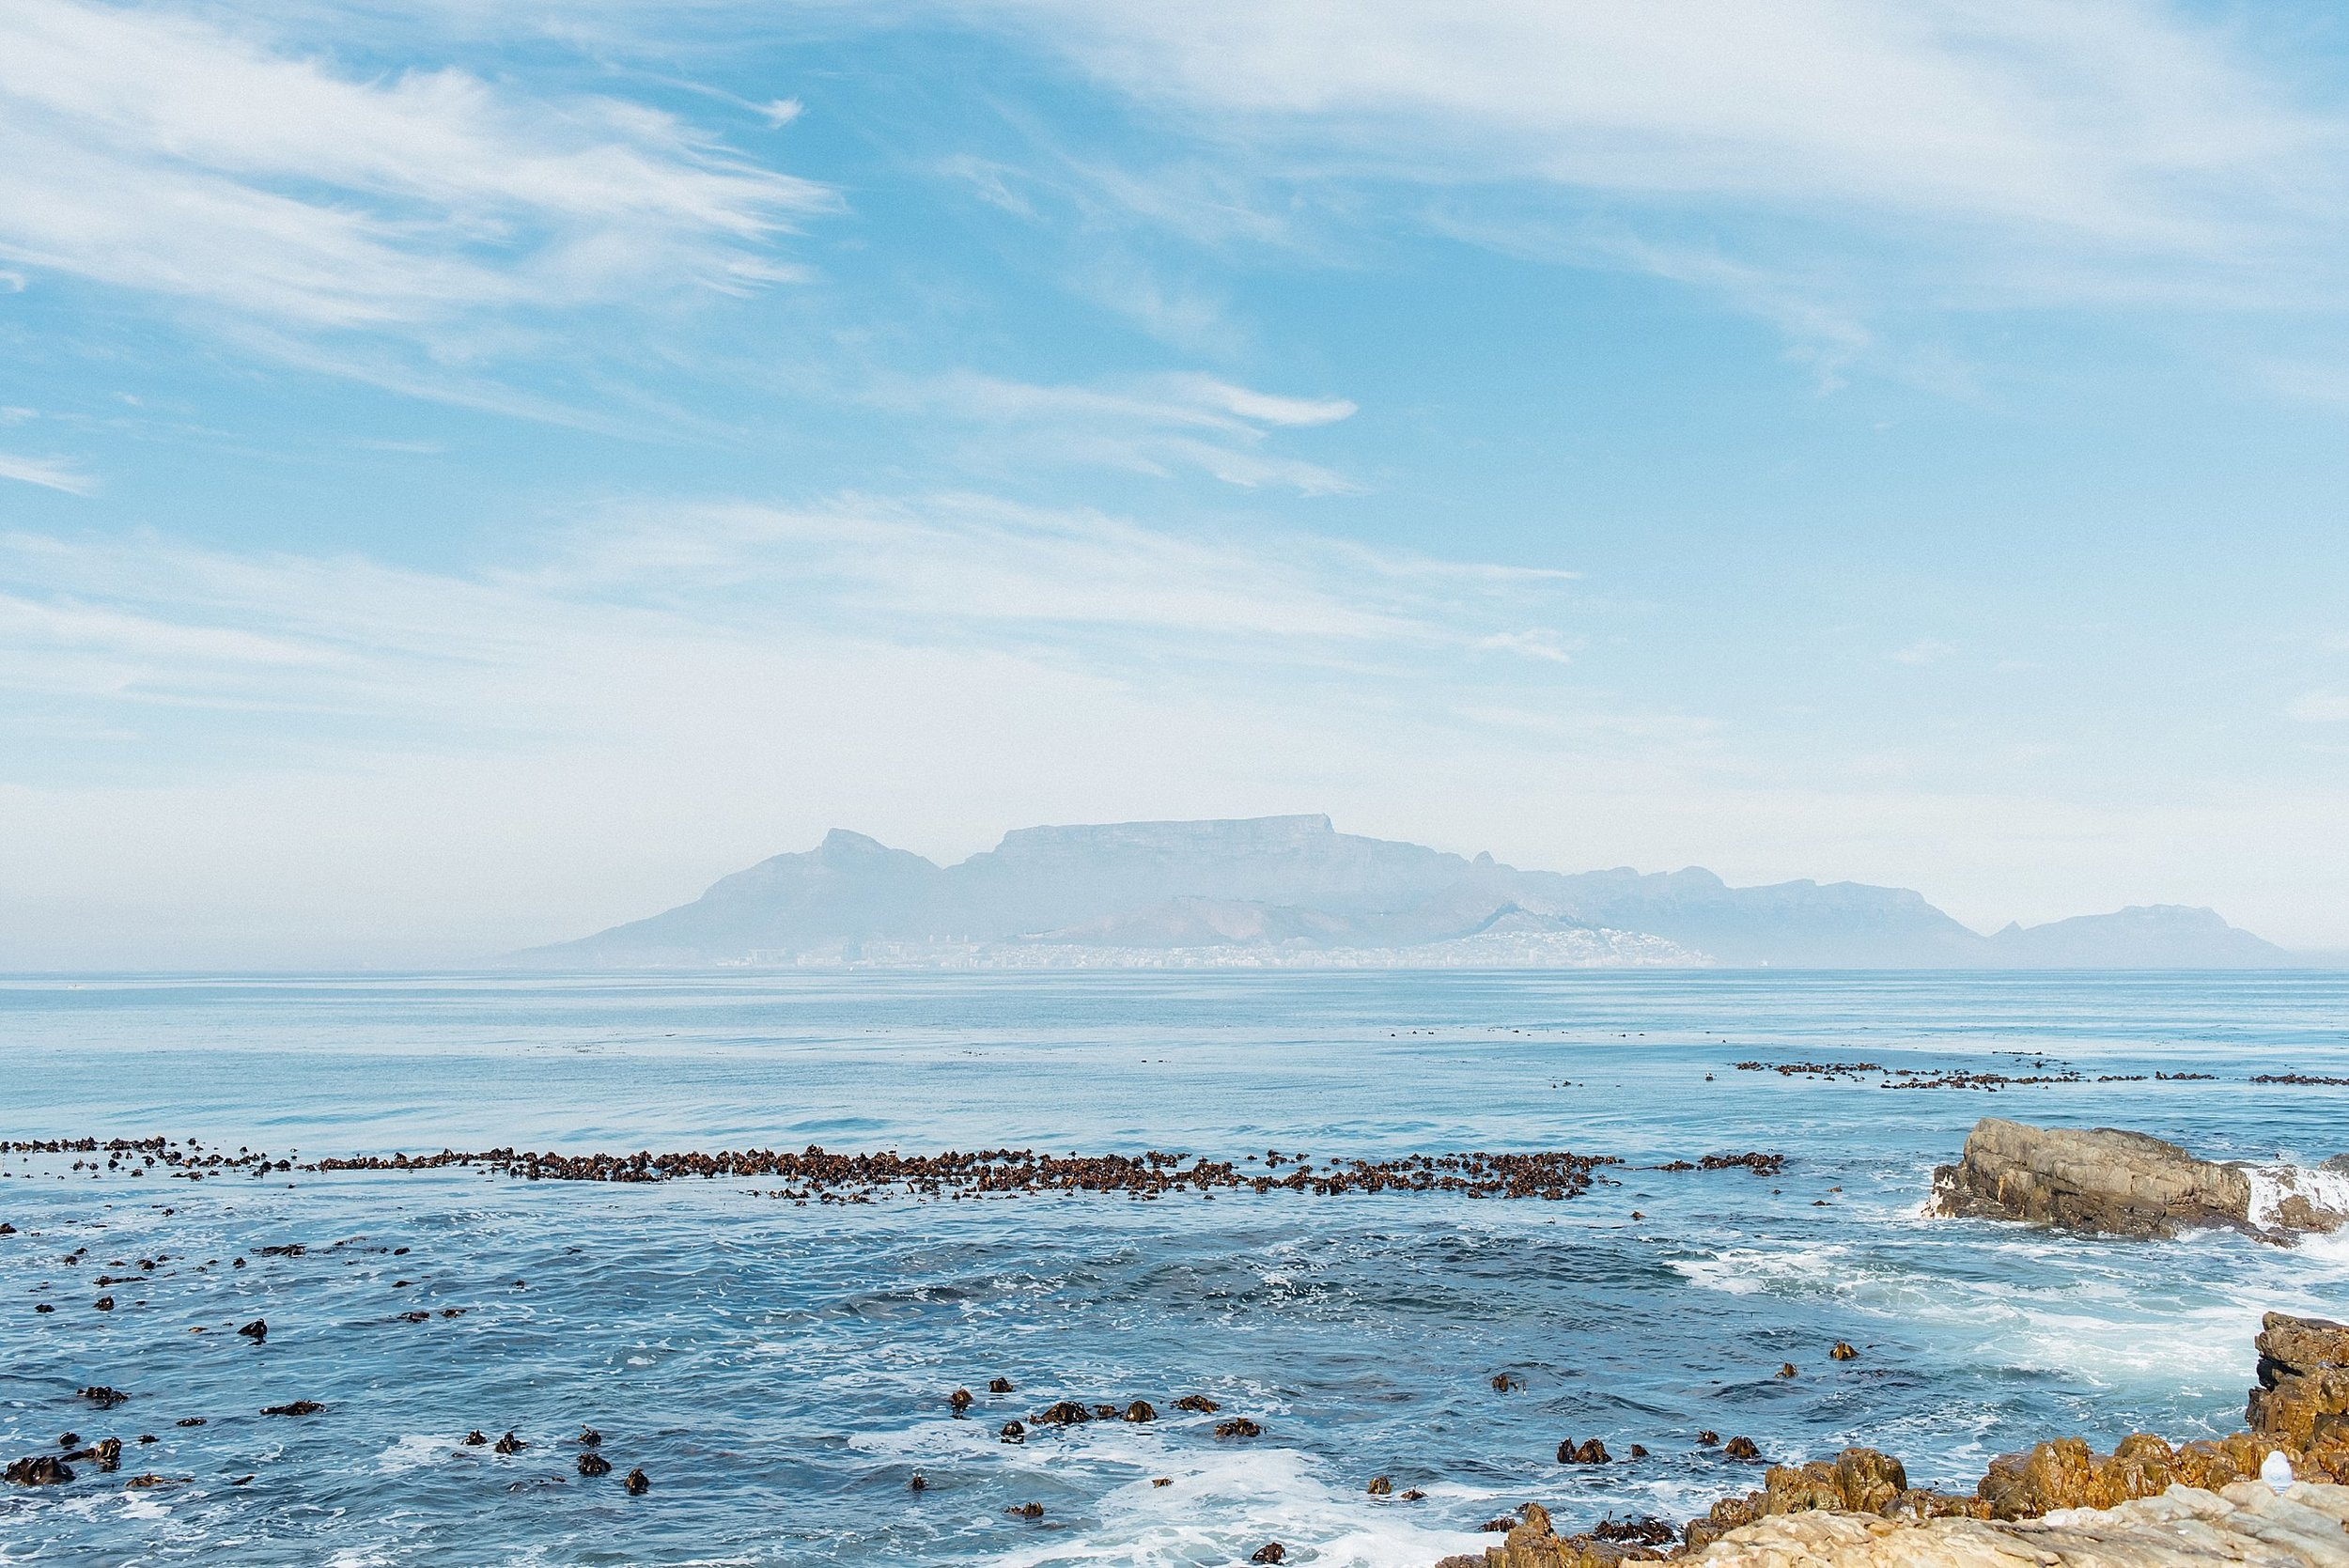 Cape Town, South Africa Travels Day 2 - BLOG - Ali and Batoul Photography-13.jpg